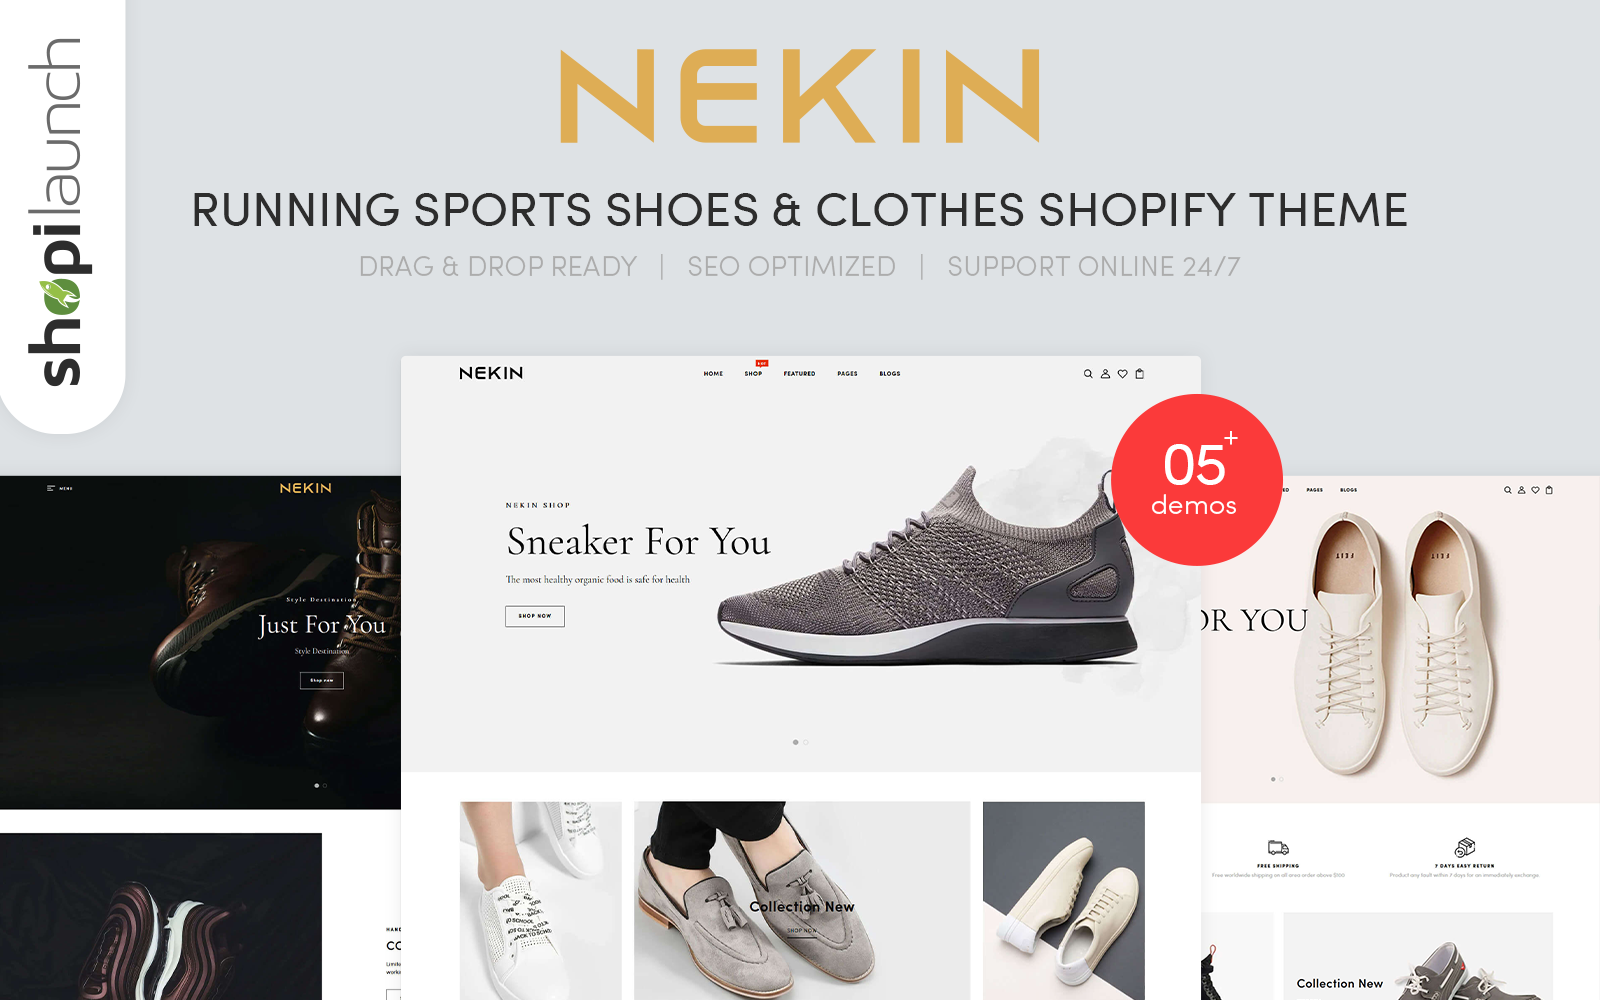 Nekin - Running Shoes, Sports Shoes & Clothes Shopify Theme